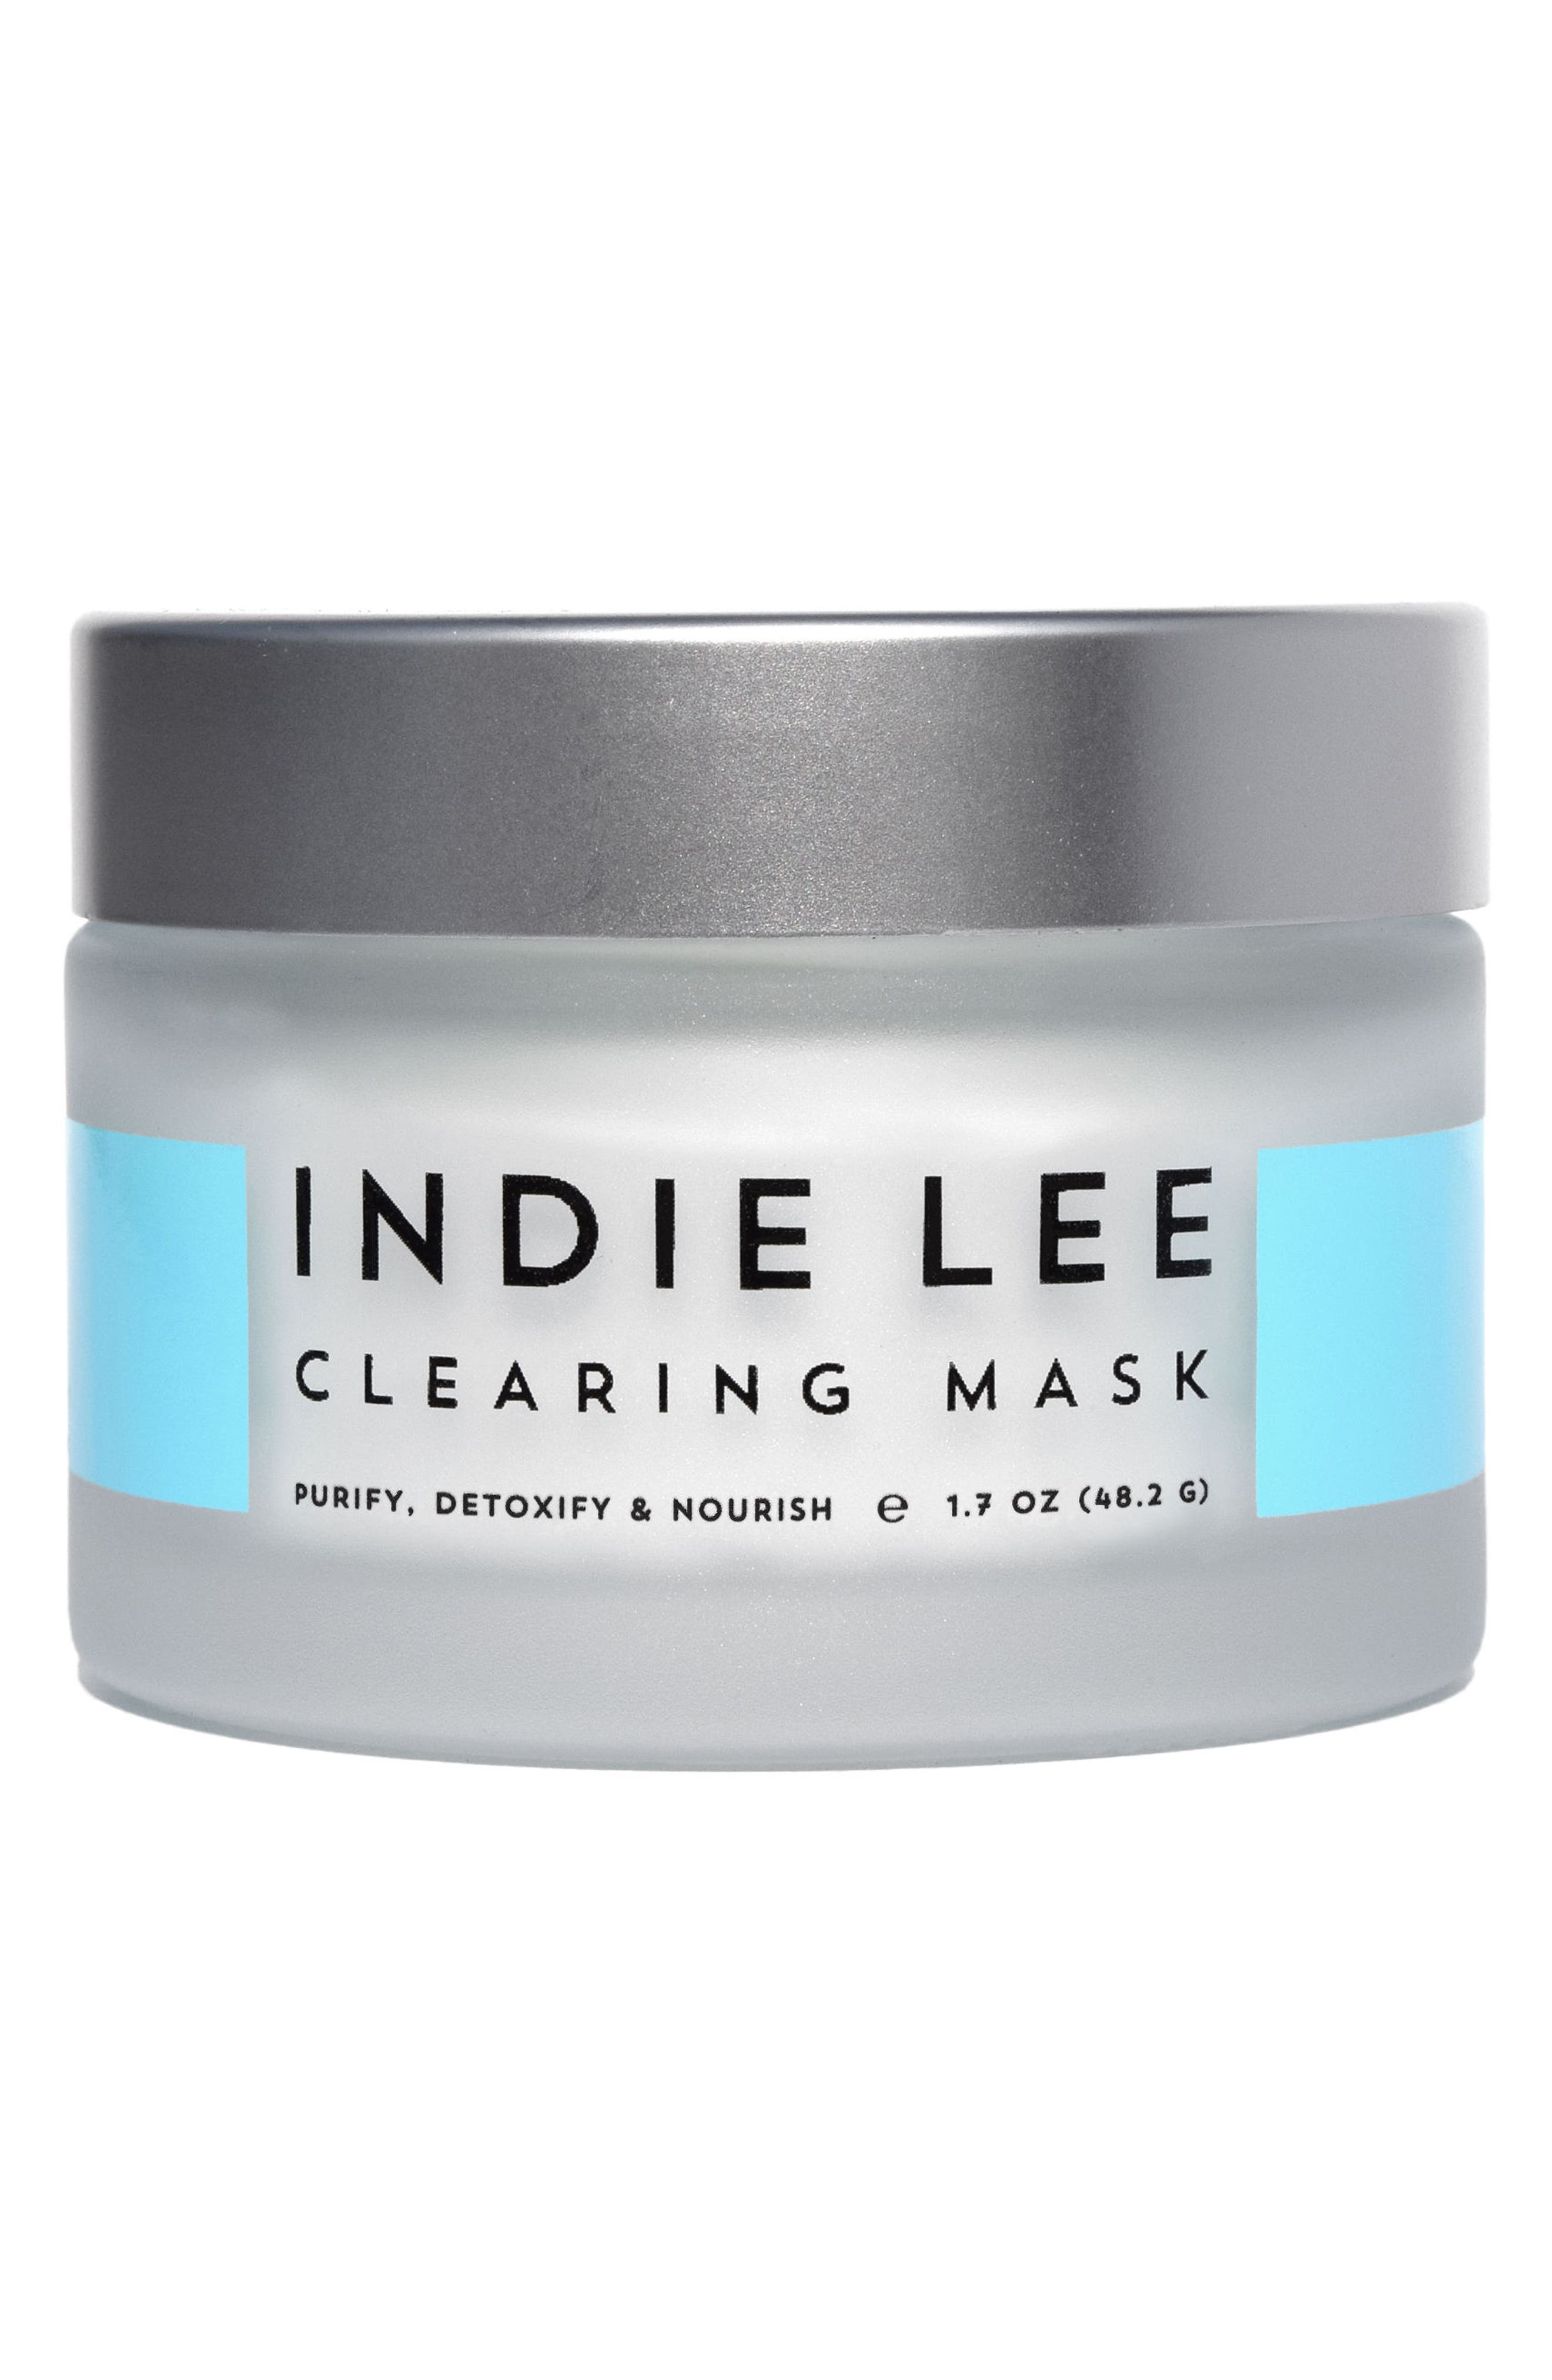 Clearing Mask,                         Main,                         color, NO COLOR